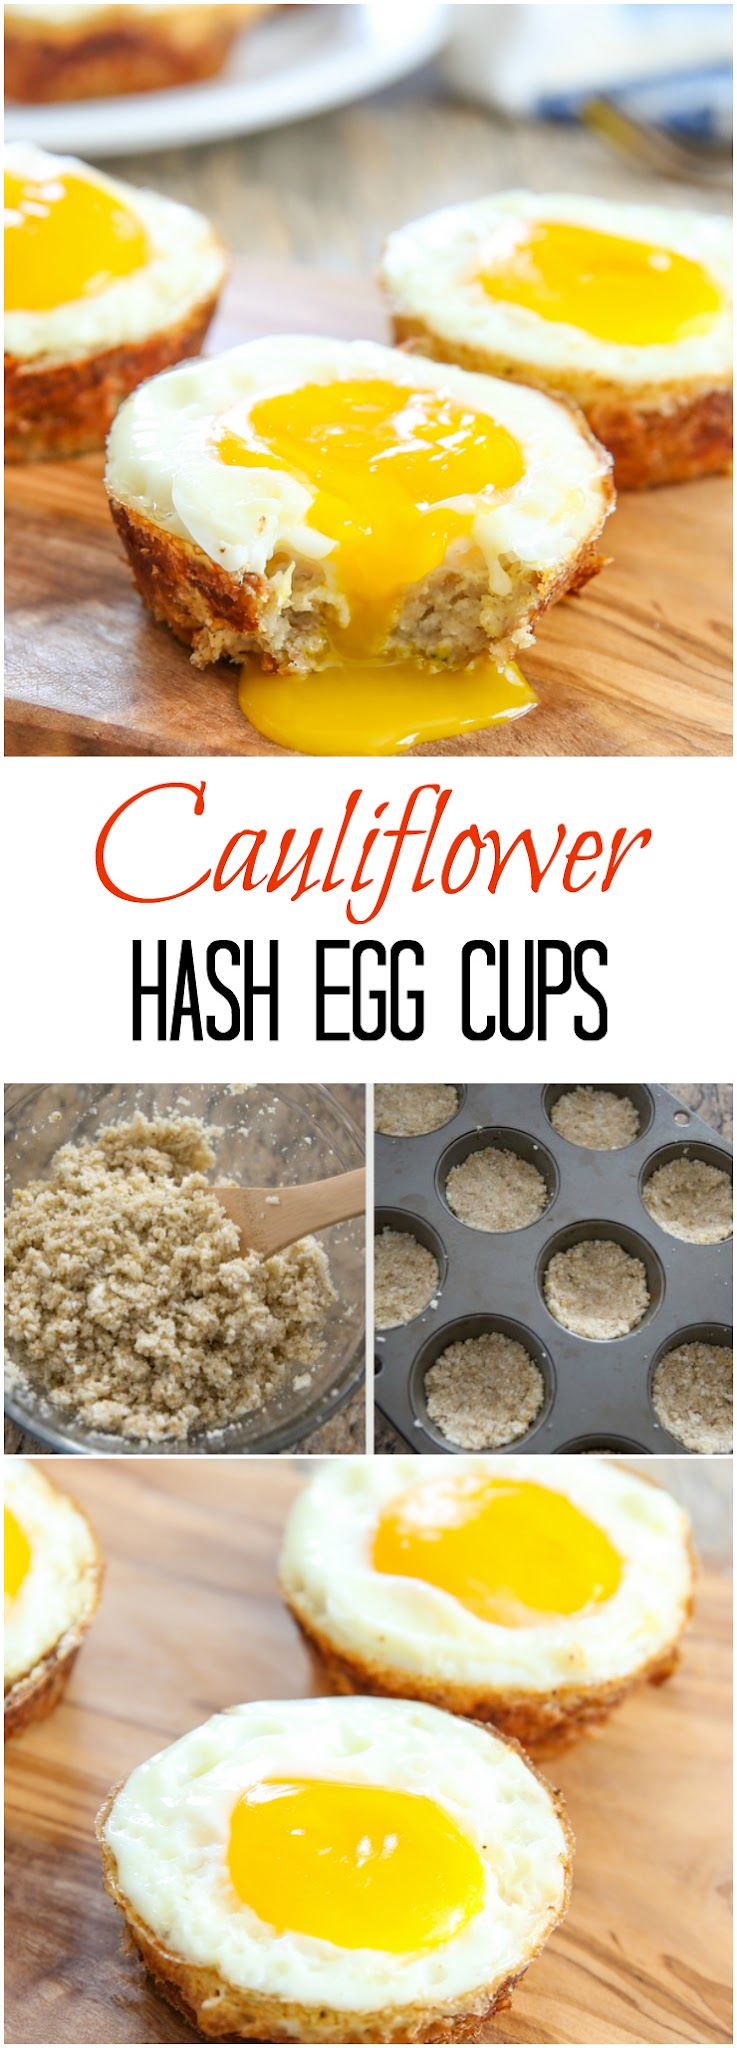 Cauliflower Hash Egg Cups photo collage